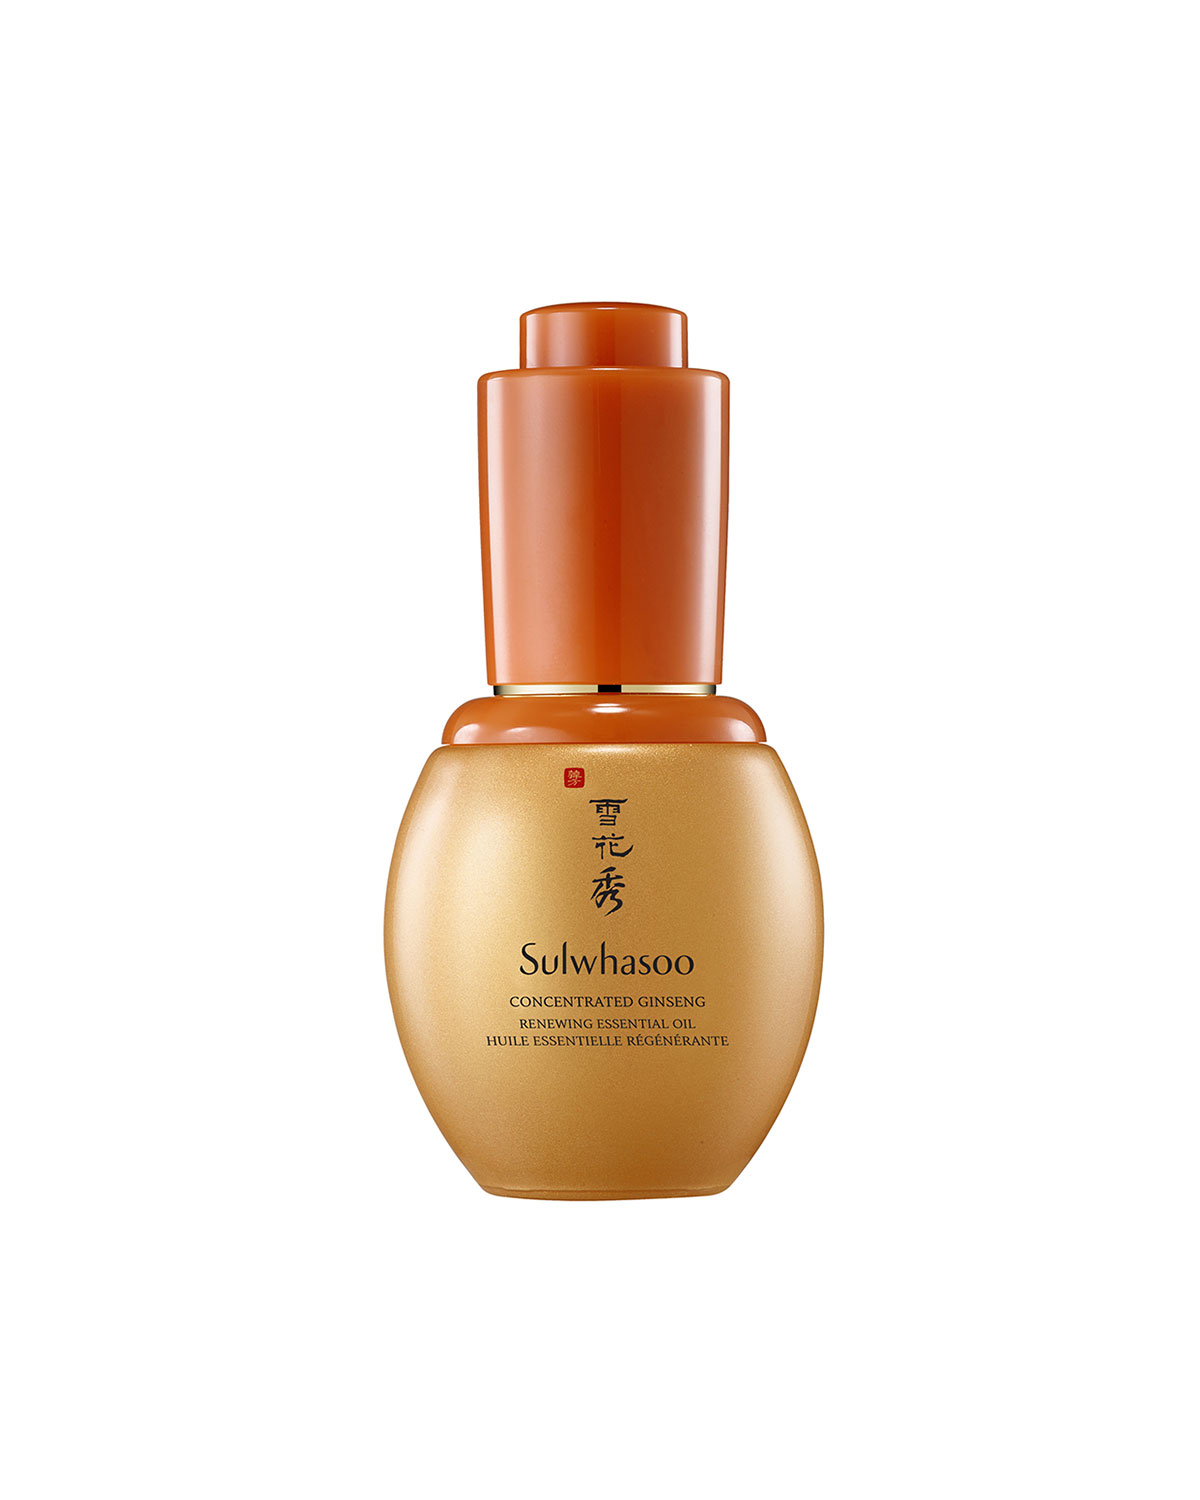 Sulwhasoo CONCENTRATED GINSENG RENEWING FACIAL OIL, 20 ML